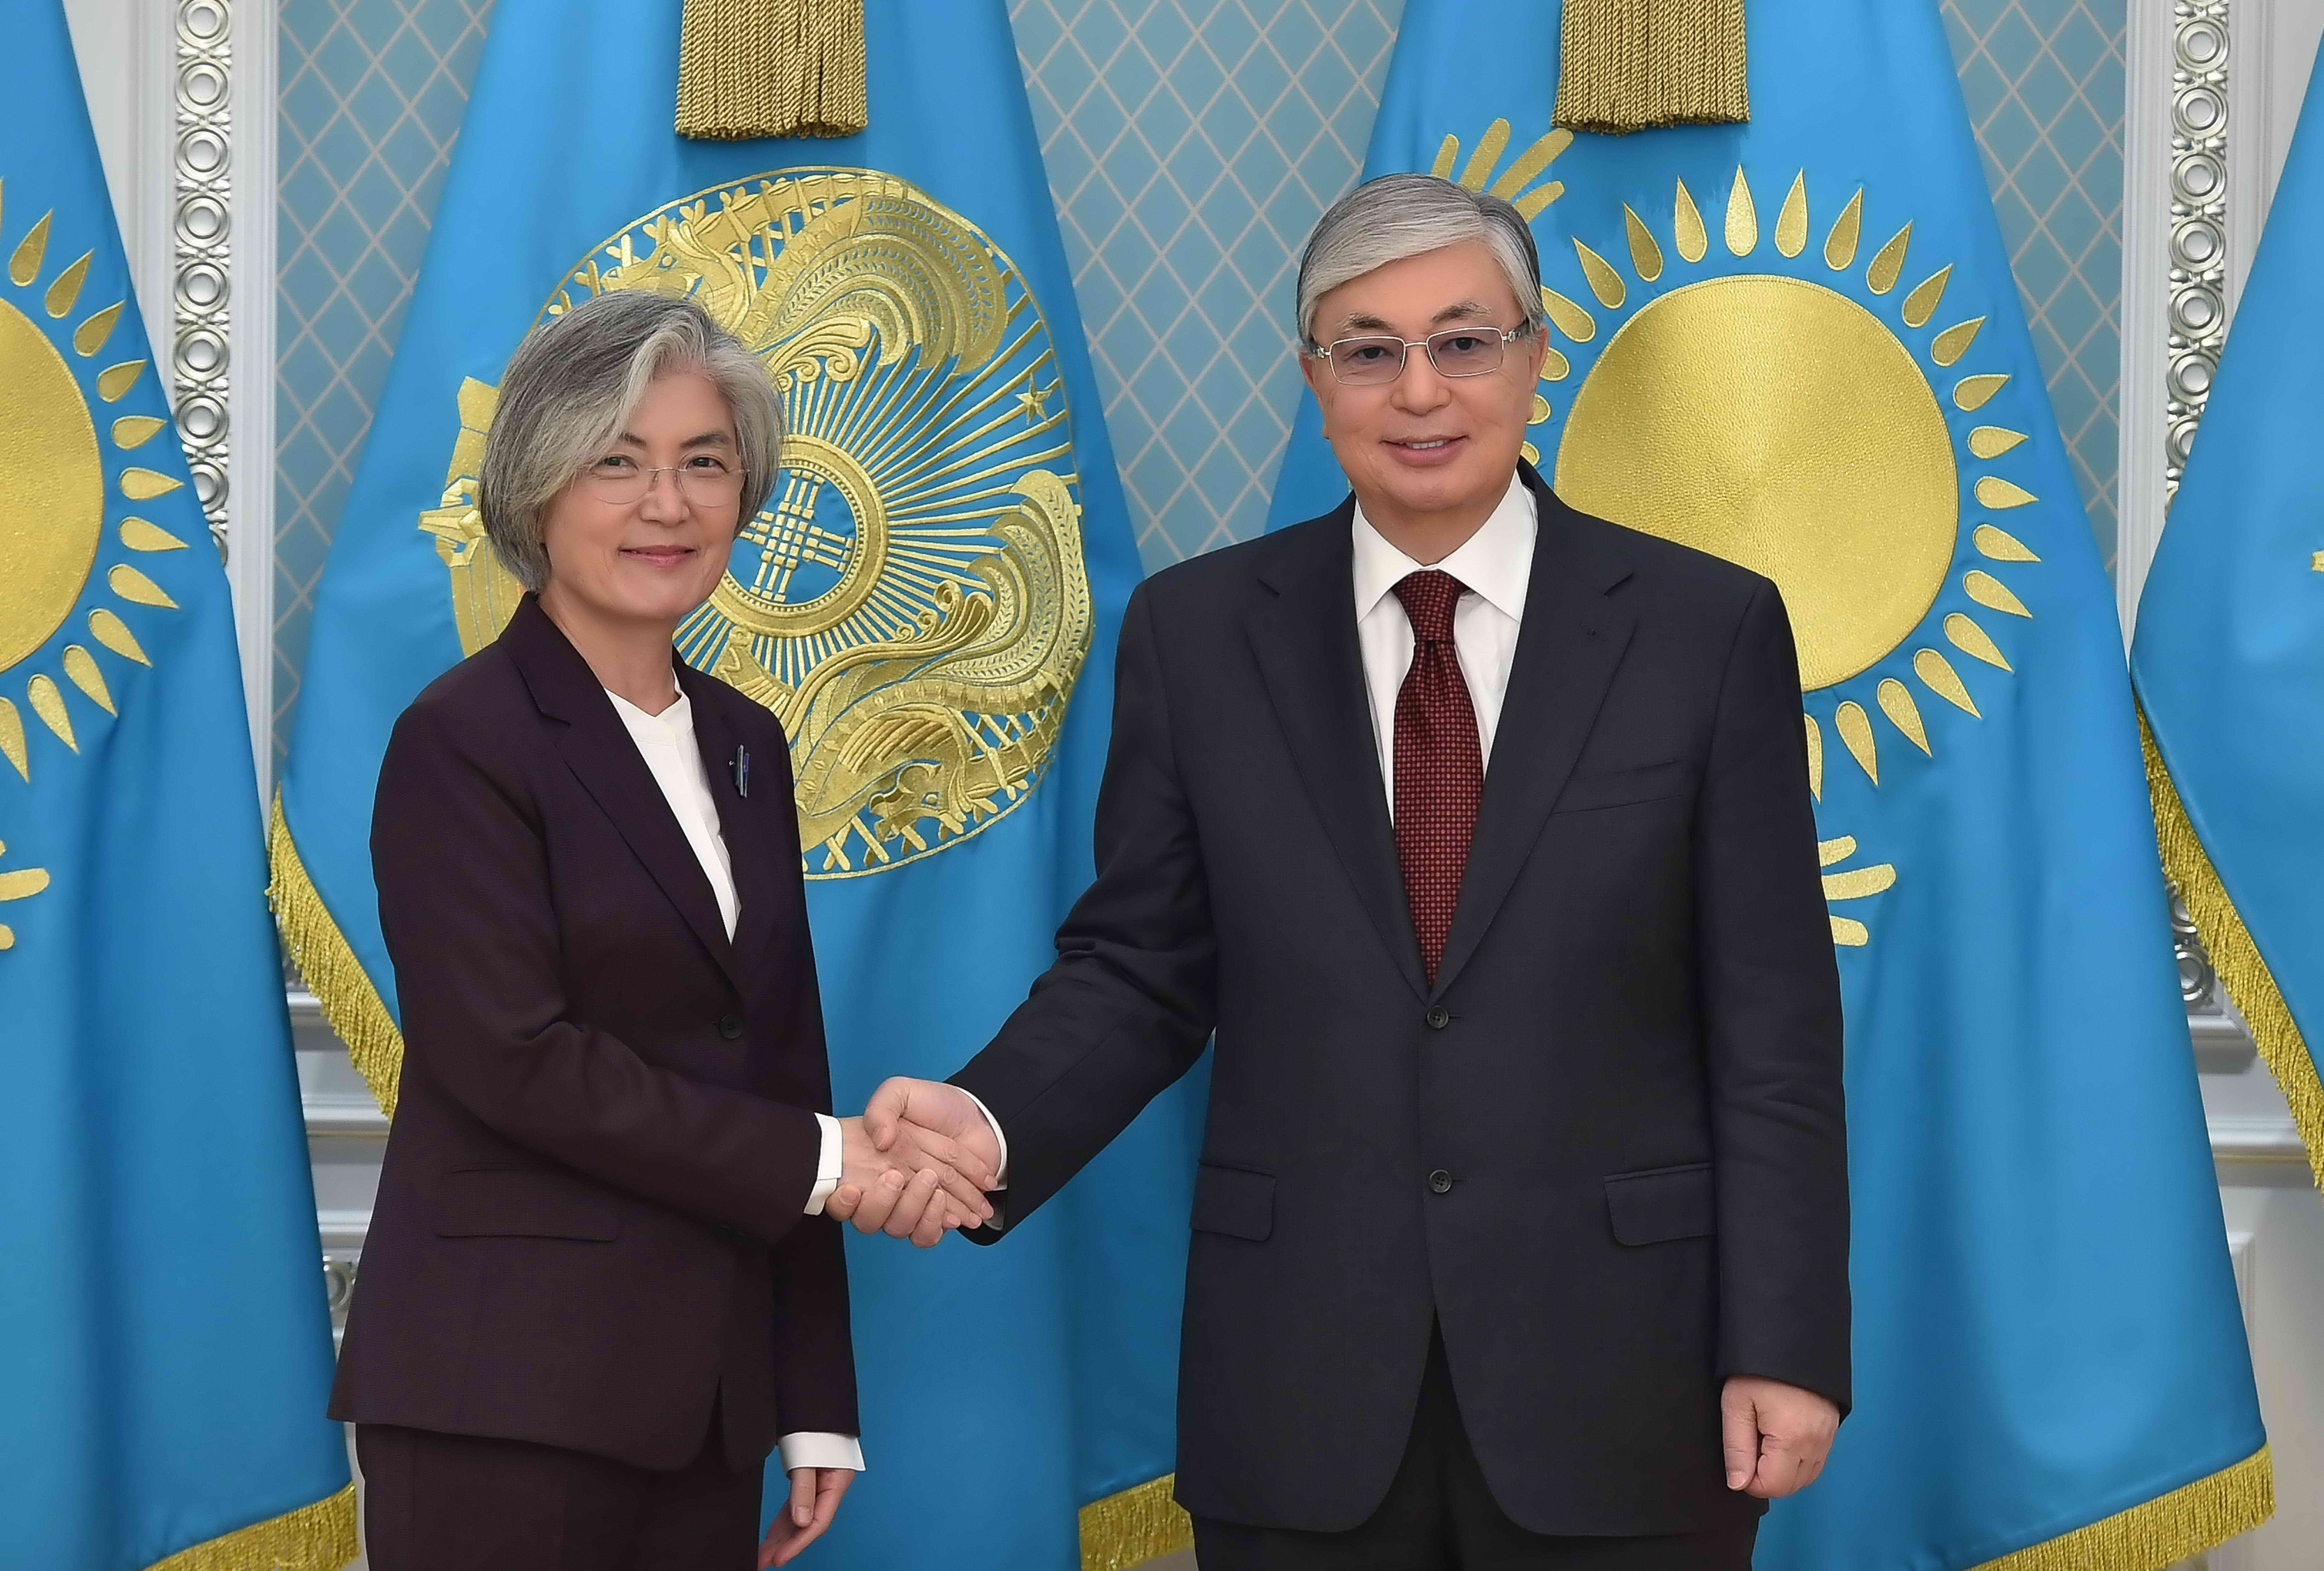 8fed126251c1c98e52523989d6c1641a - Kassym-Zhomart Tokayev will visit South Korea in 2020